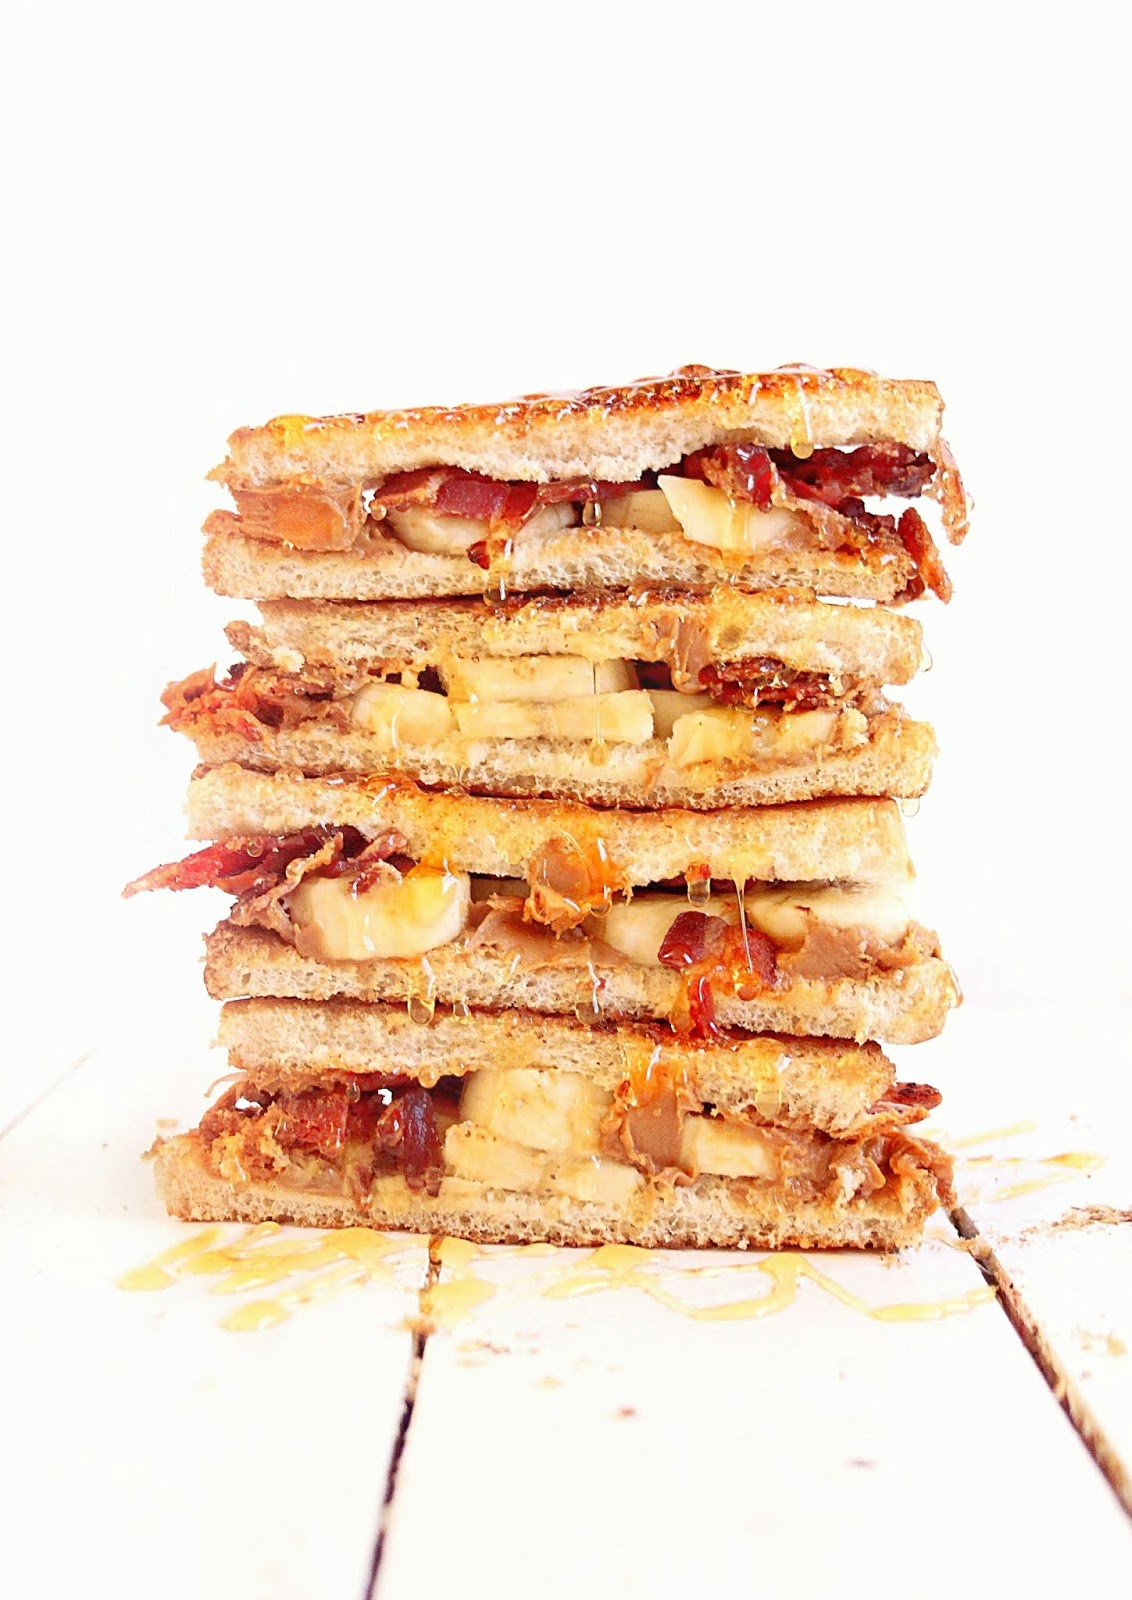 Elvis didn't invent the peanut butter and banana sandwich, but he sure did make it famous. This version includes bacon, and is a family favorite!